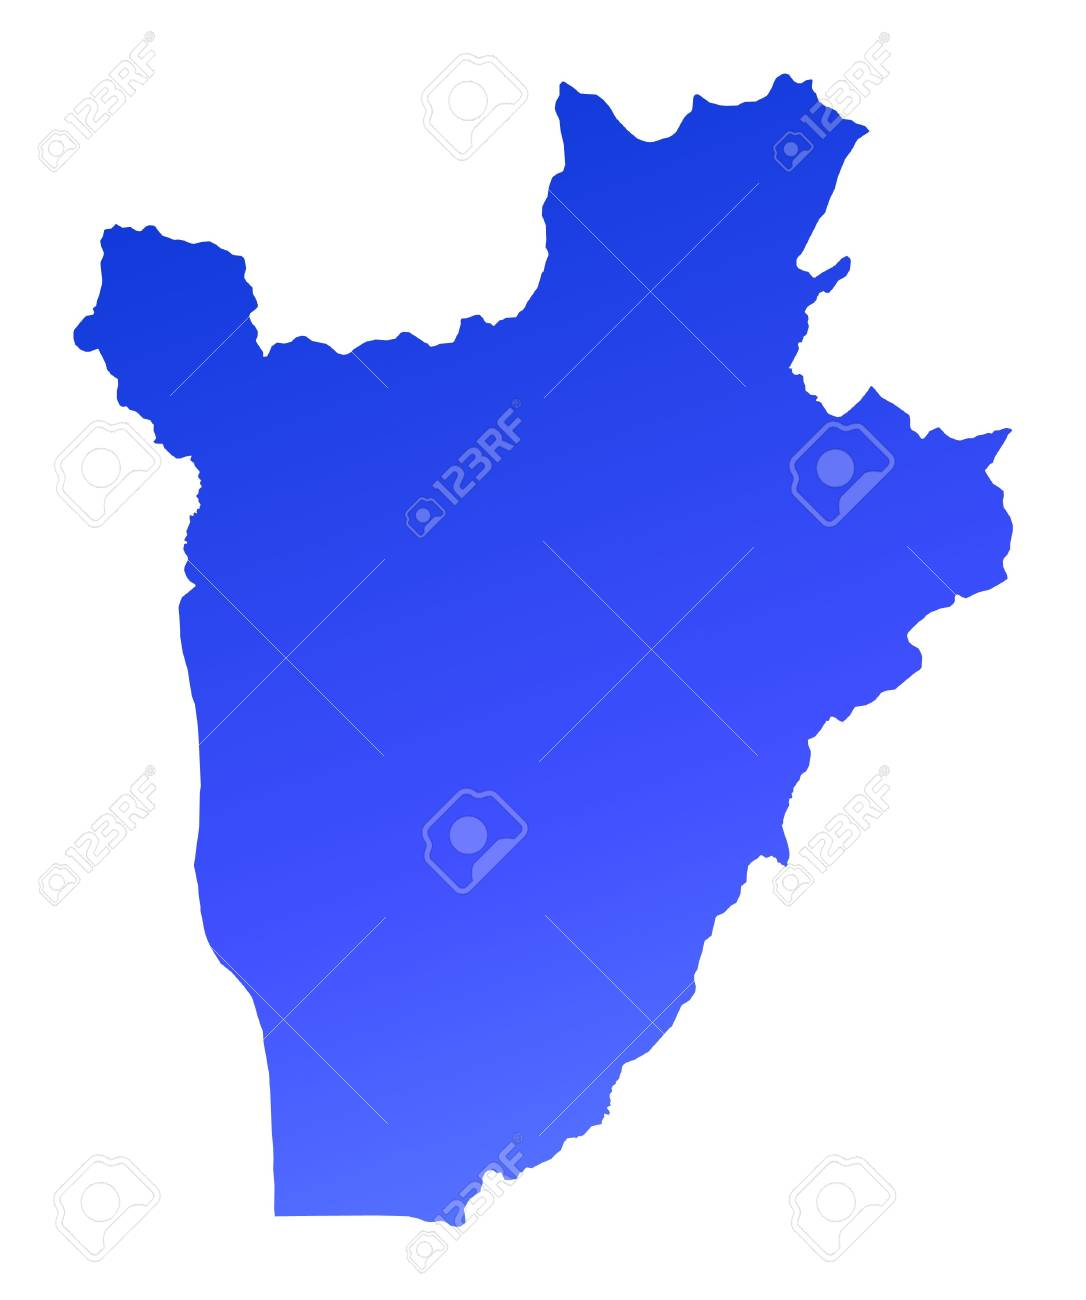 Blue gradient Burundi map. Detailed, Mercator projection. Stock Photo - 2114559